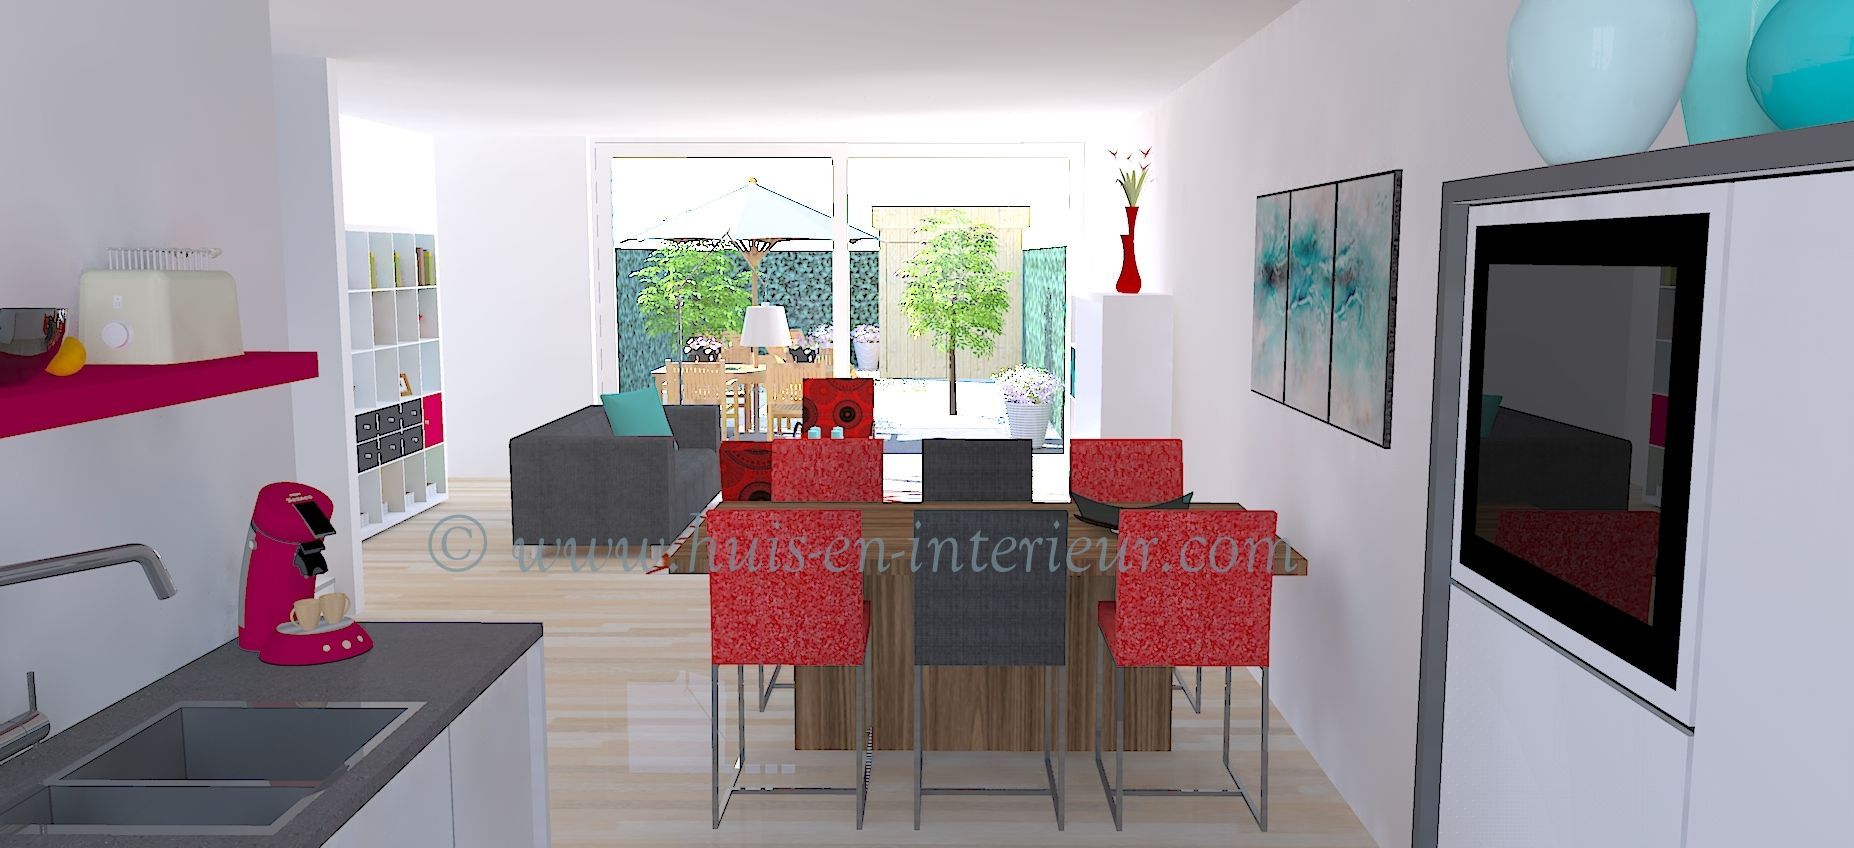 1000+ images about 3D visuals (SketchUp) on Pinterest